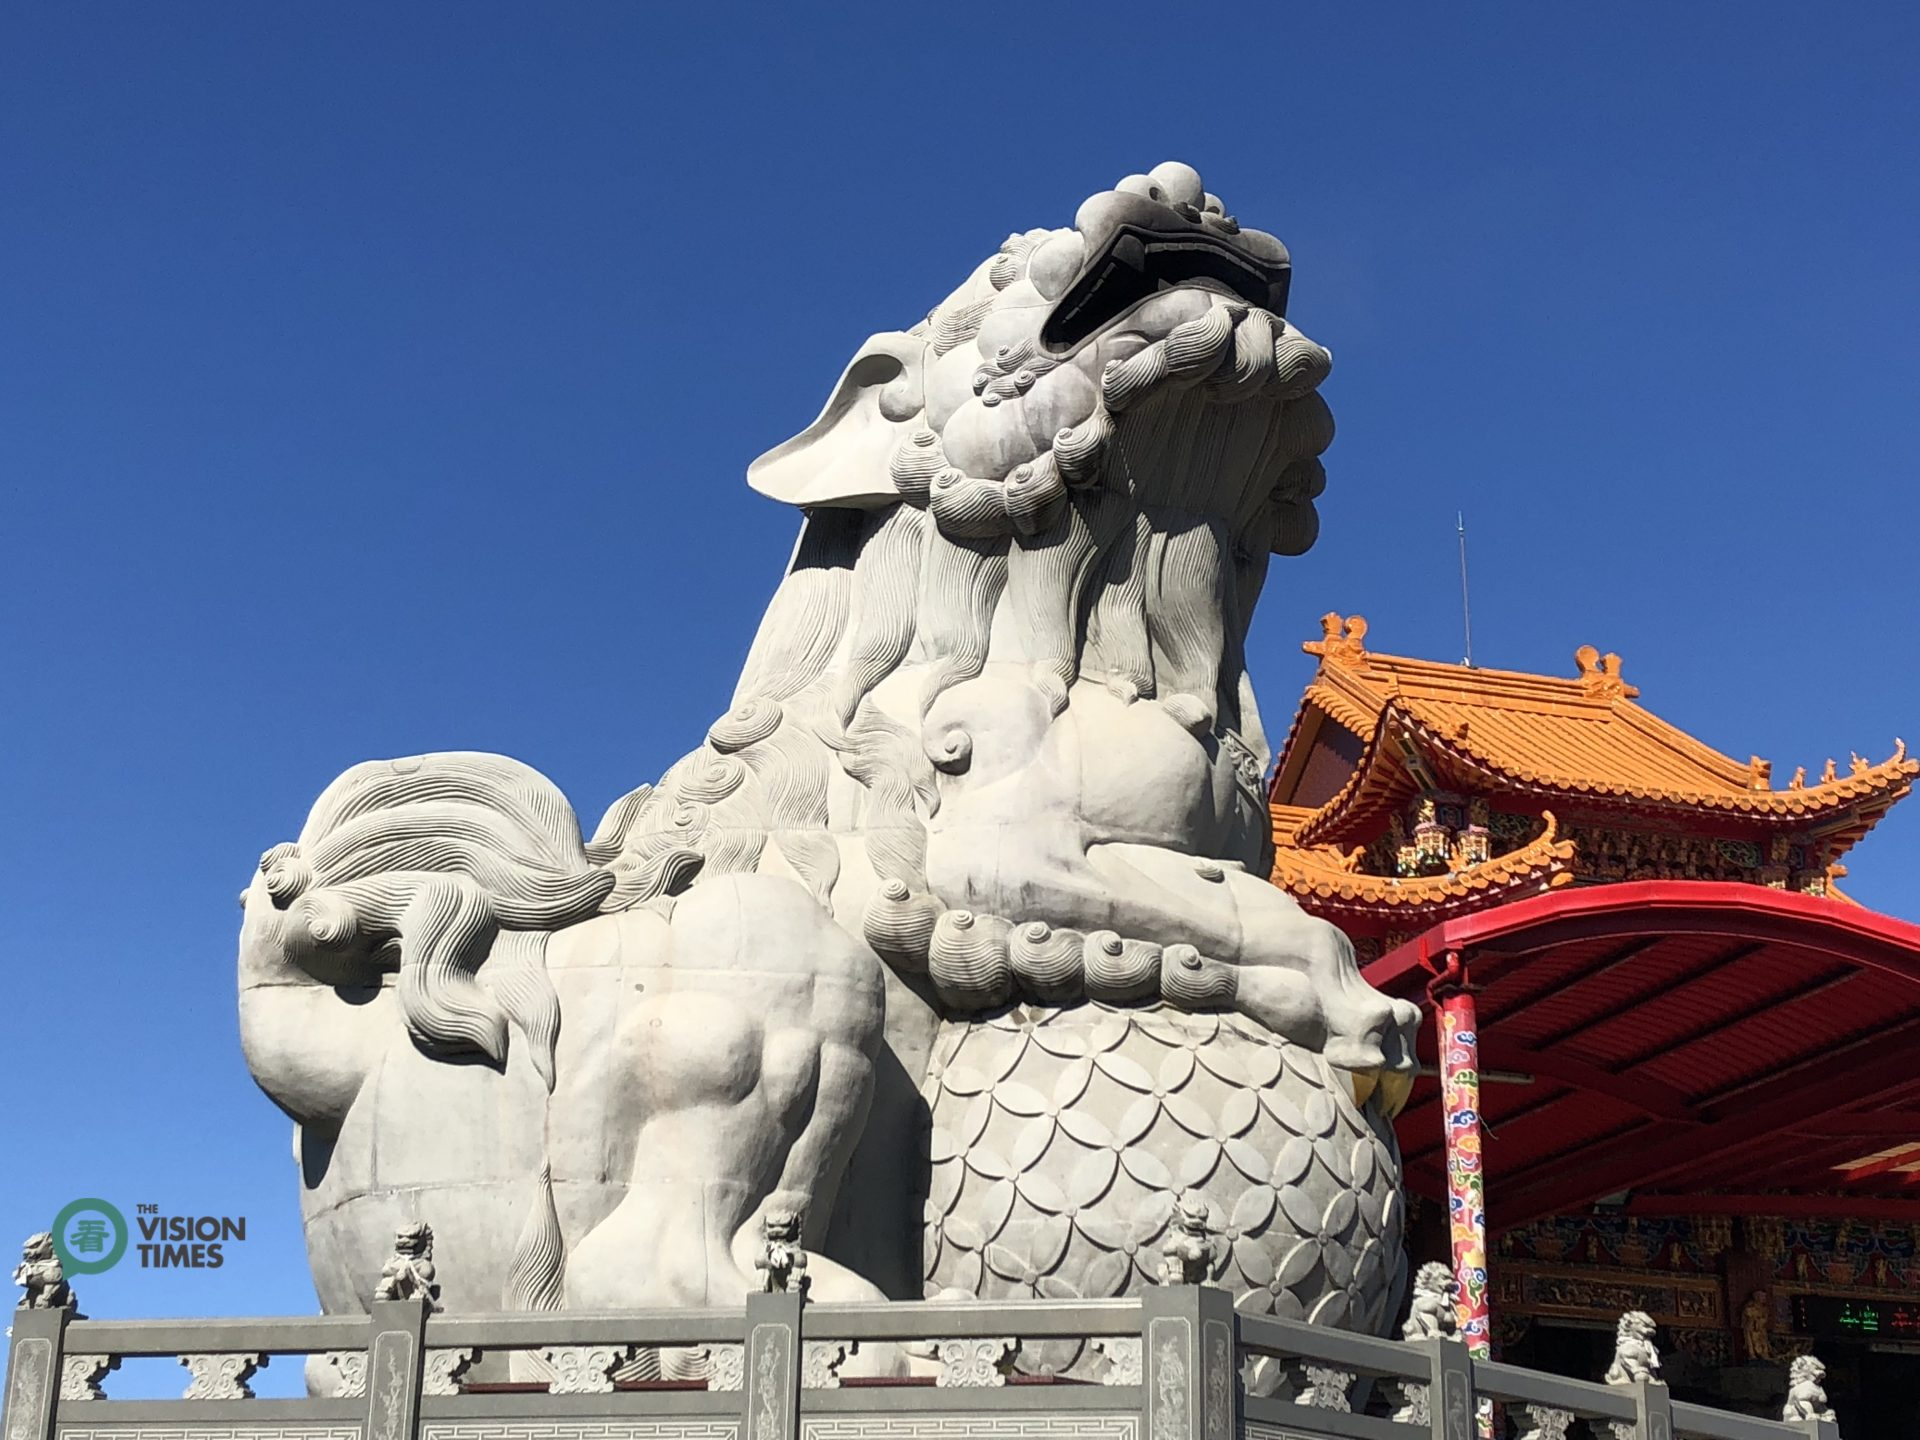 The giant stone lion sculpture at Luqiu's Fuan Temple. (Image: Julia Fu / Vision Times)